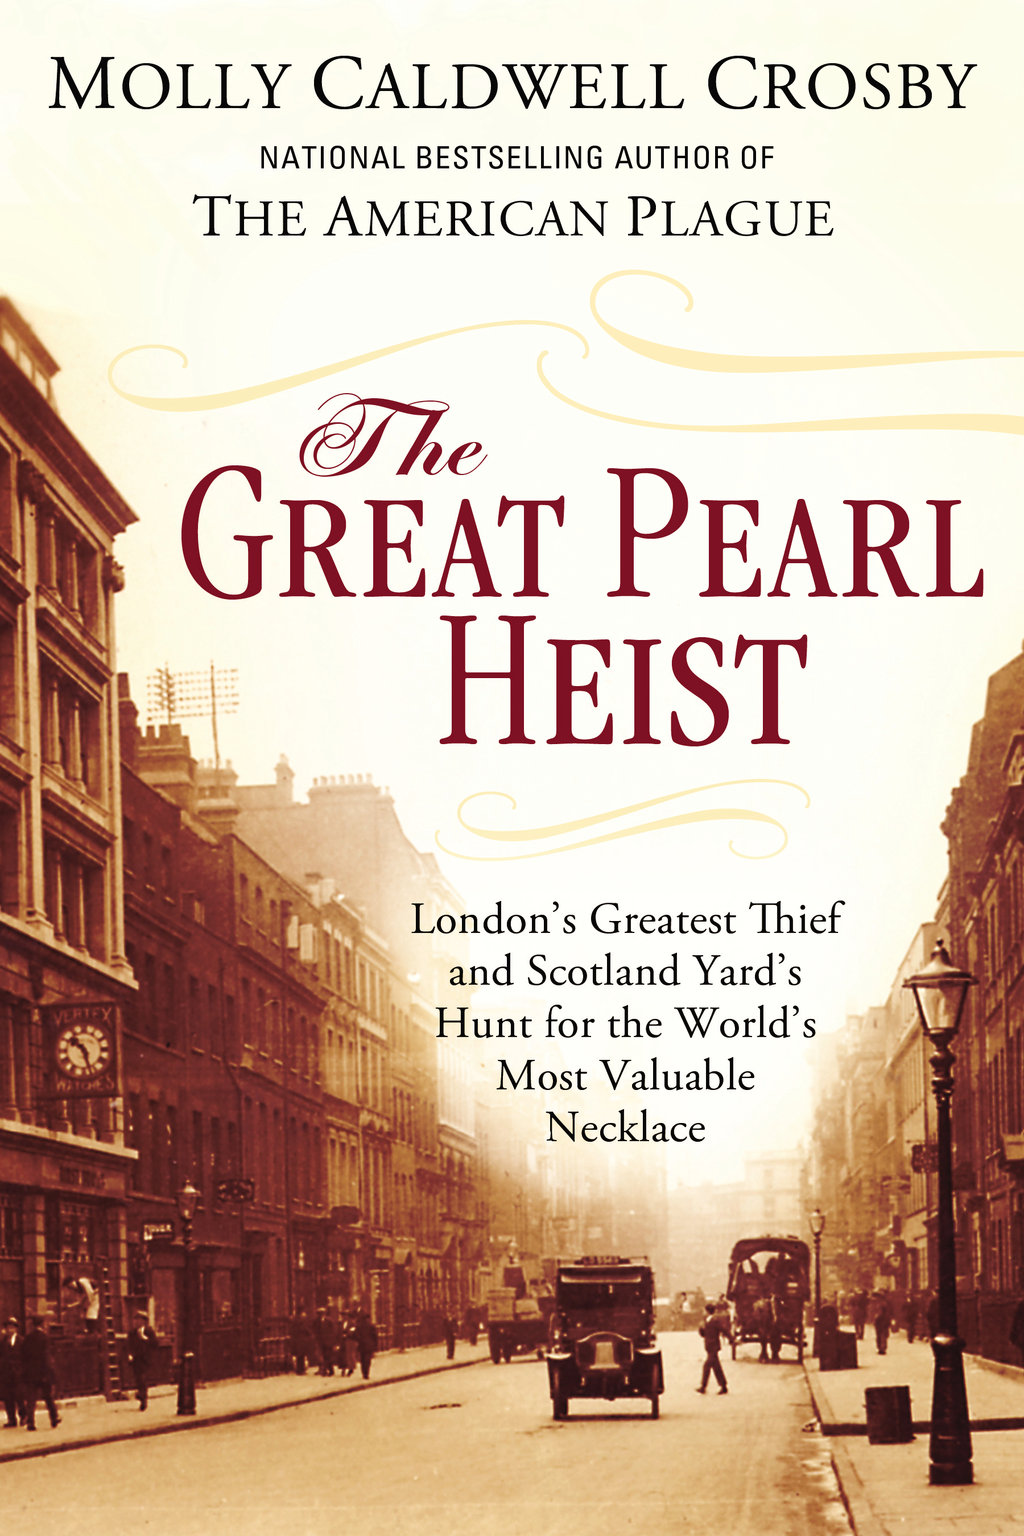 The Great Pearl Heist By: Molly Caldwell Crosby